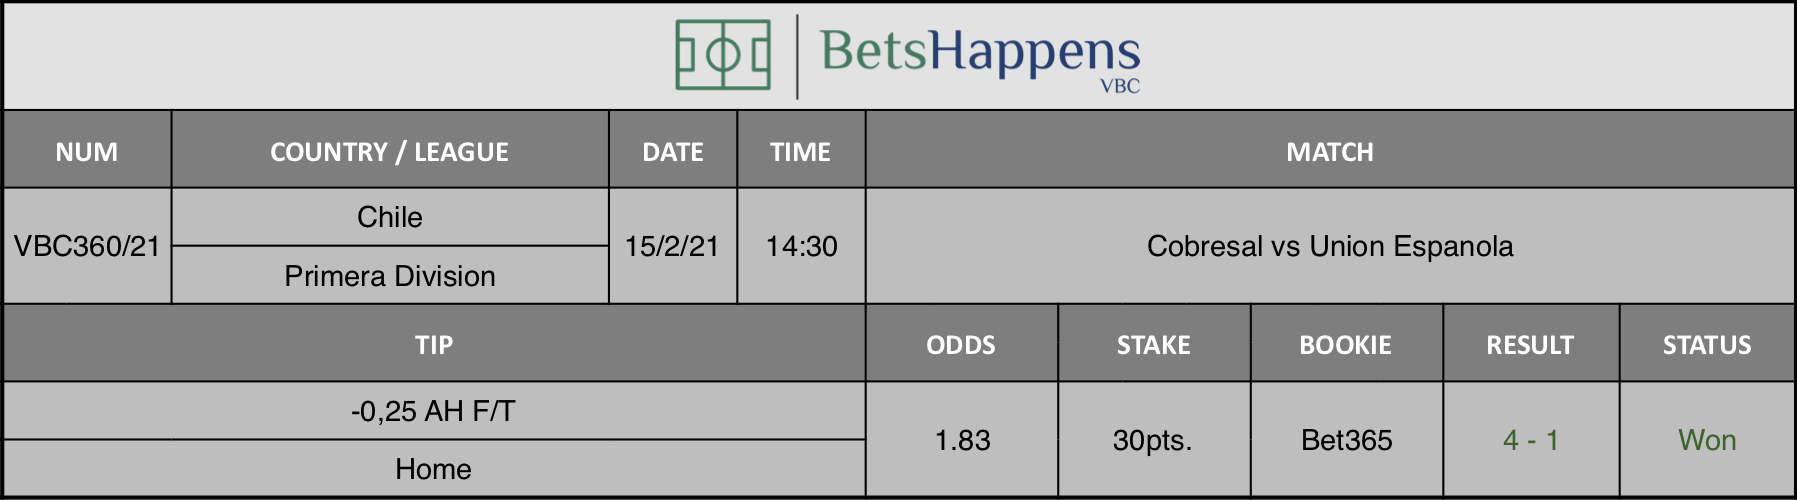 Results of our tip for the Cobresal vs Union Espanola match where -0,25 AH F/T Home is recommended.